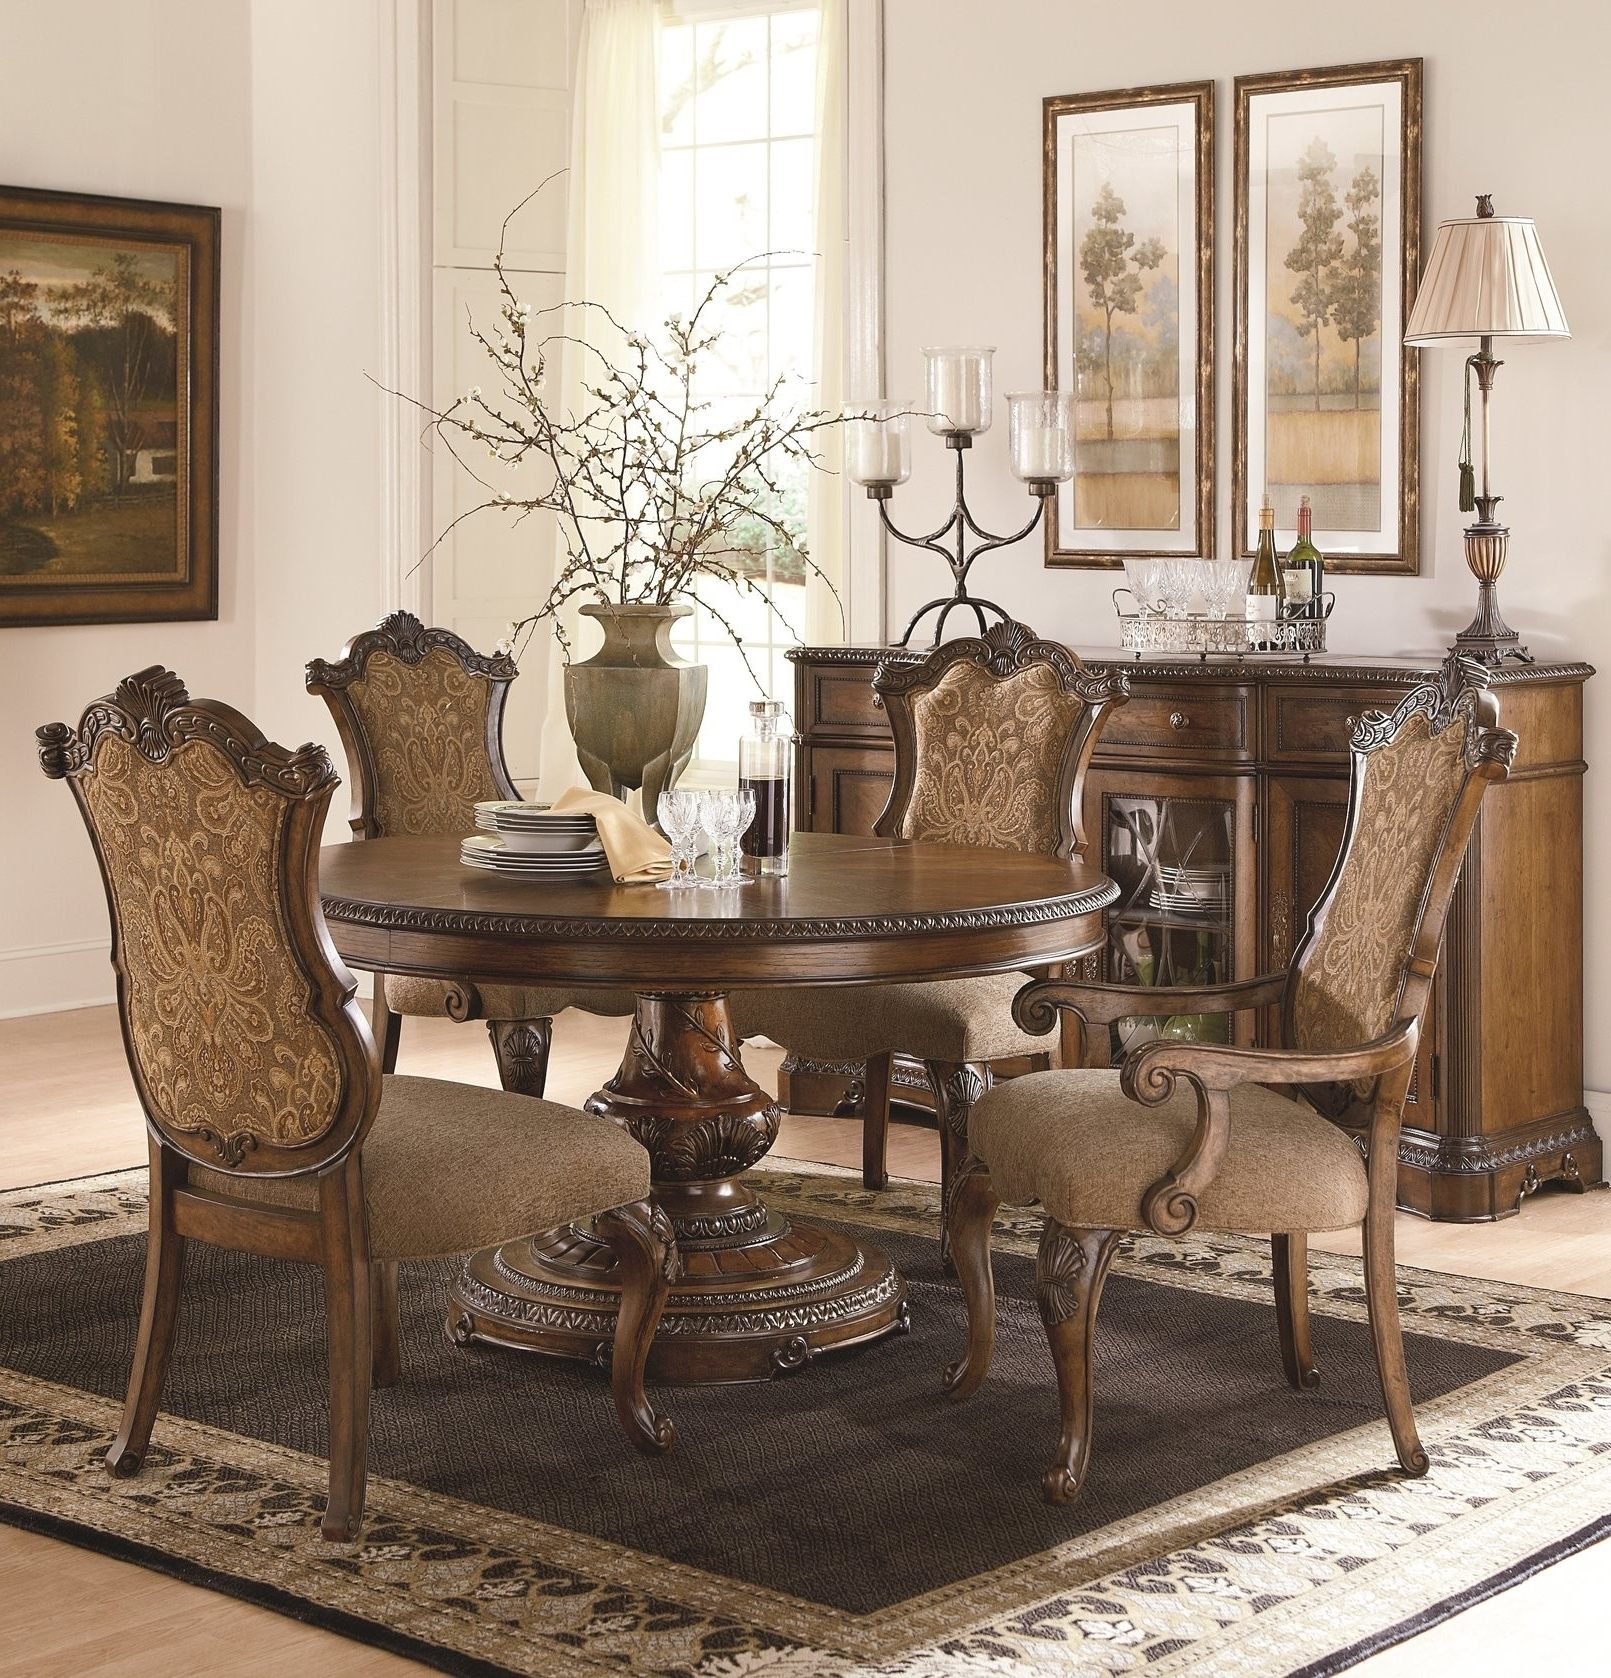 Jaxon 7 Piece Rectangle Dining Sets With Wood Chairs Within Most Recently Released Dining Table Upholstered Chairs Unique The Pemberleigh Round Table (Gallery 19 of 25)